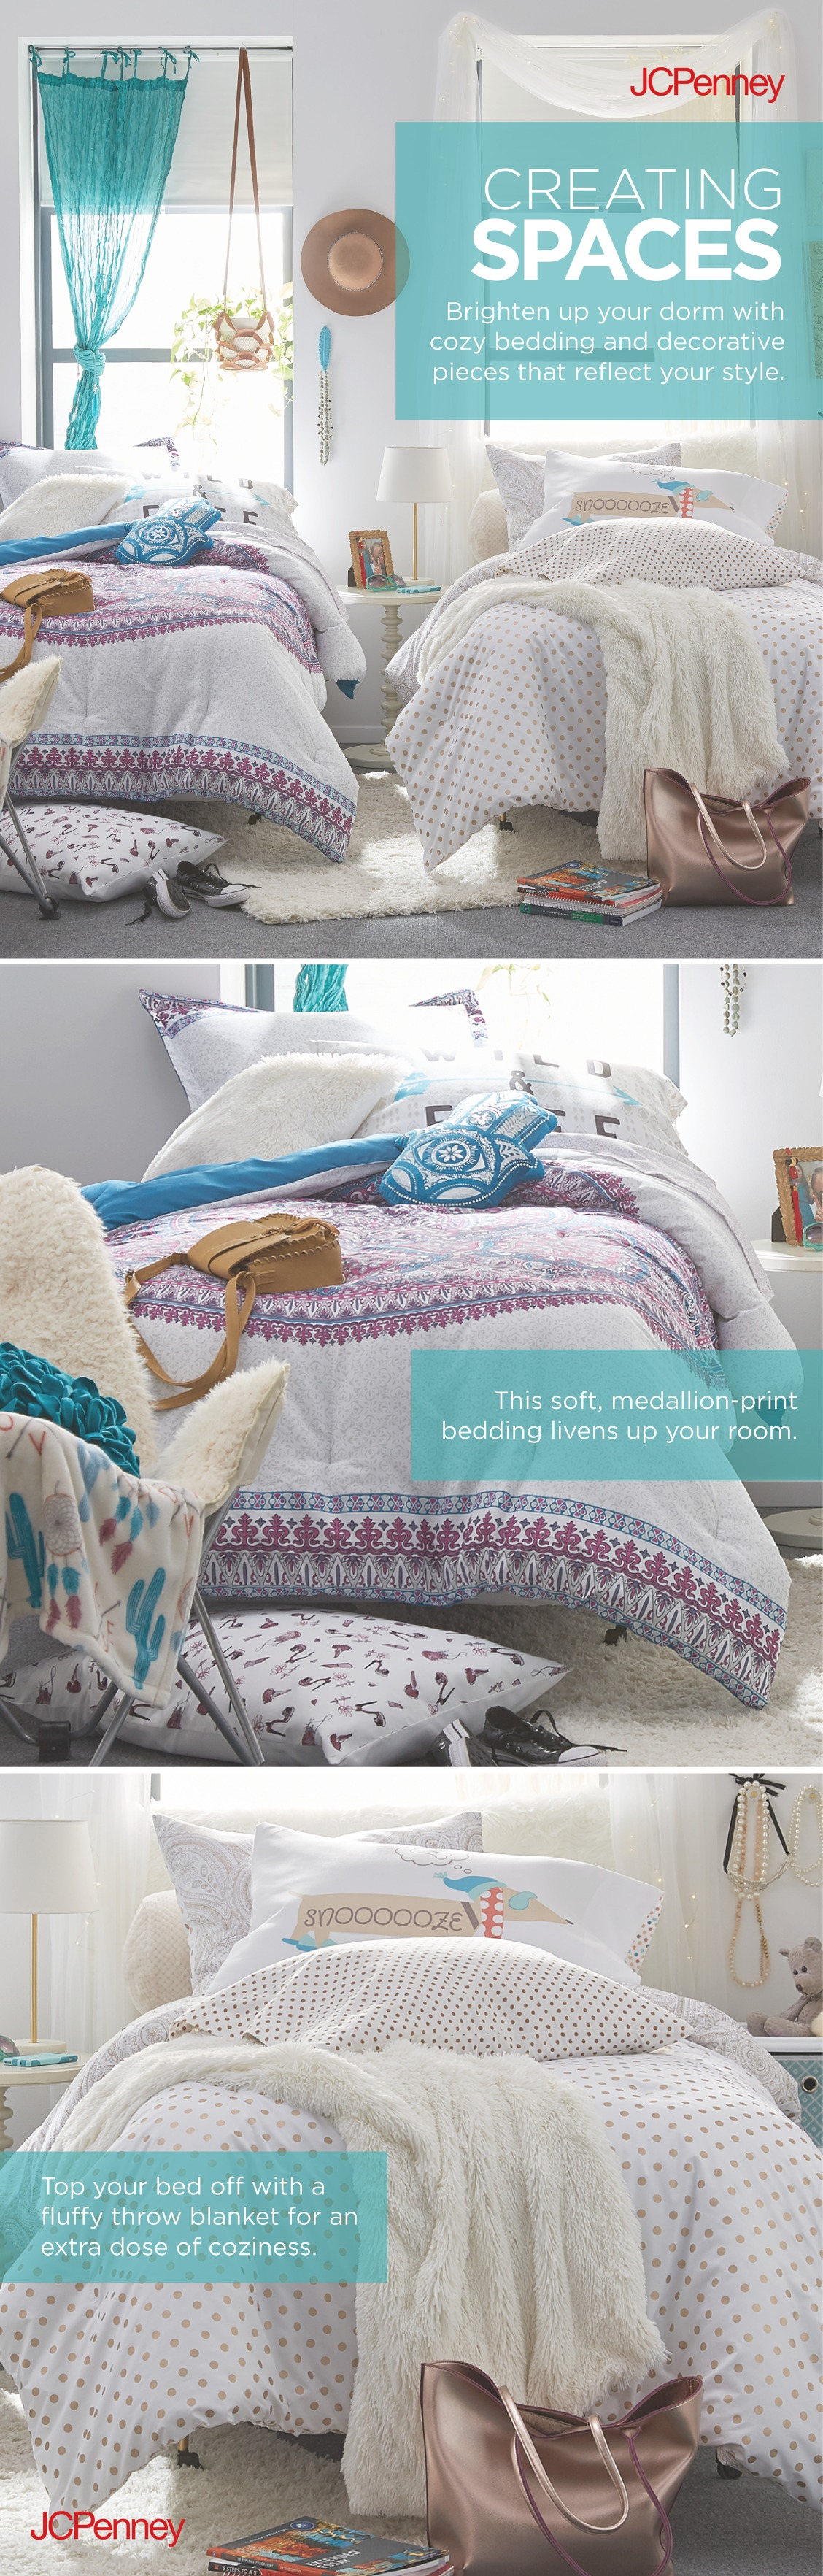 Comforters, throw pillows, blankets and more! JCPenney has ...